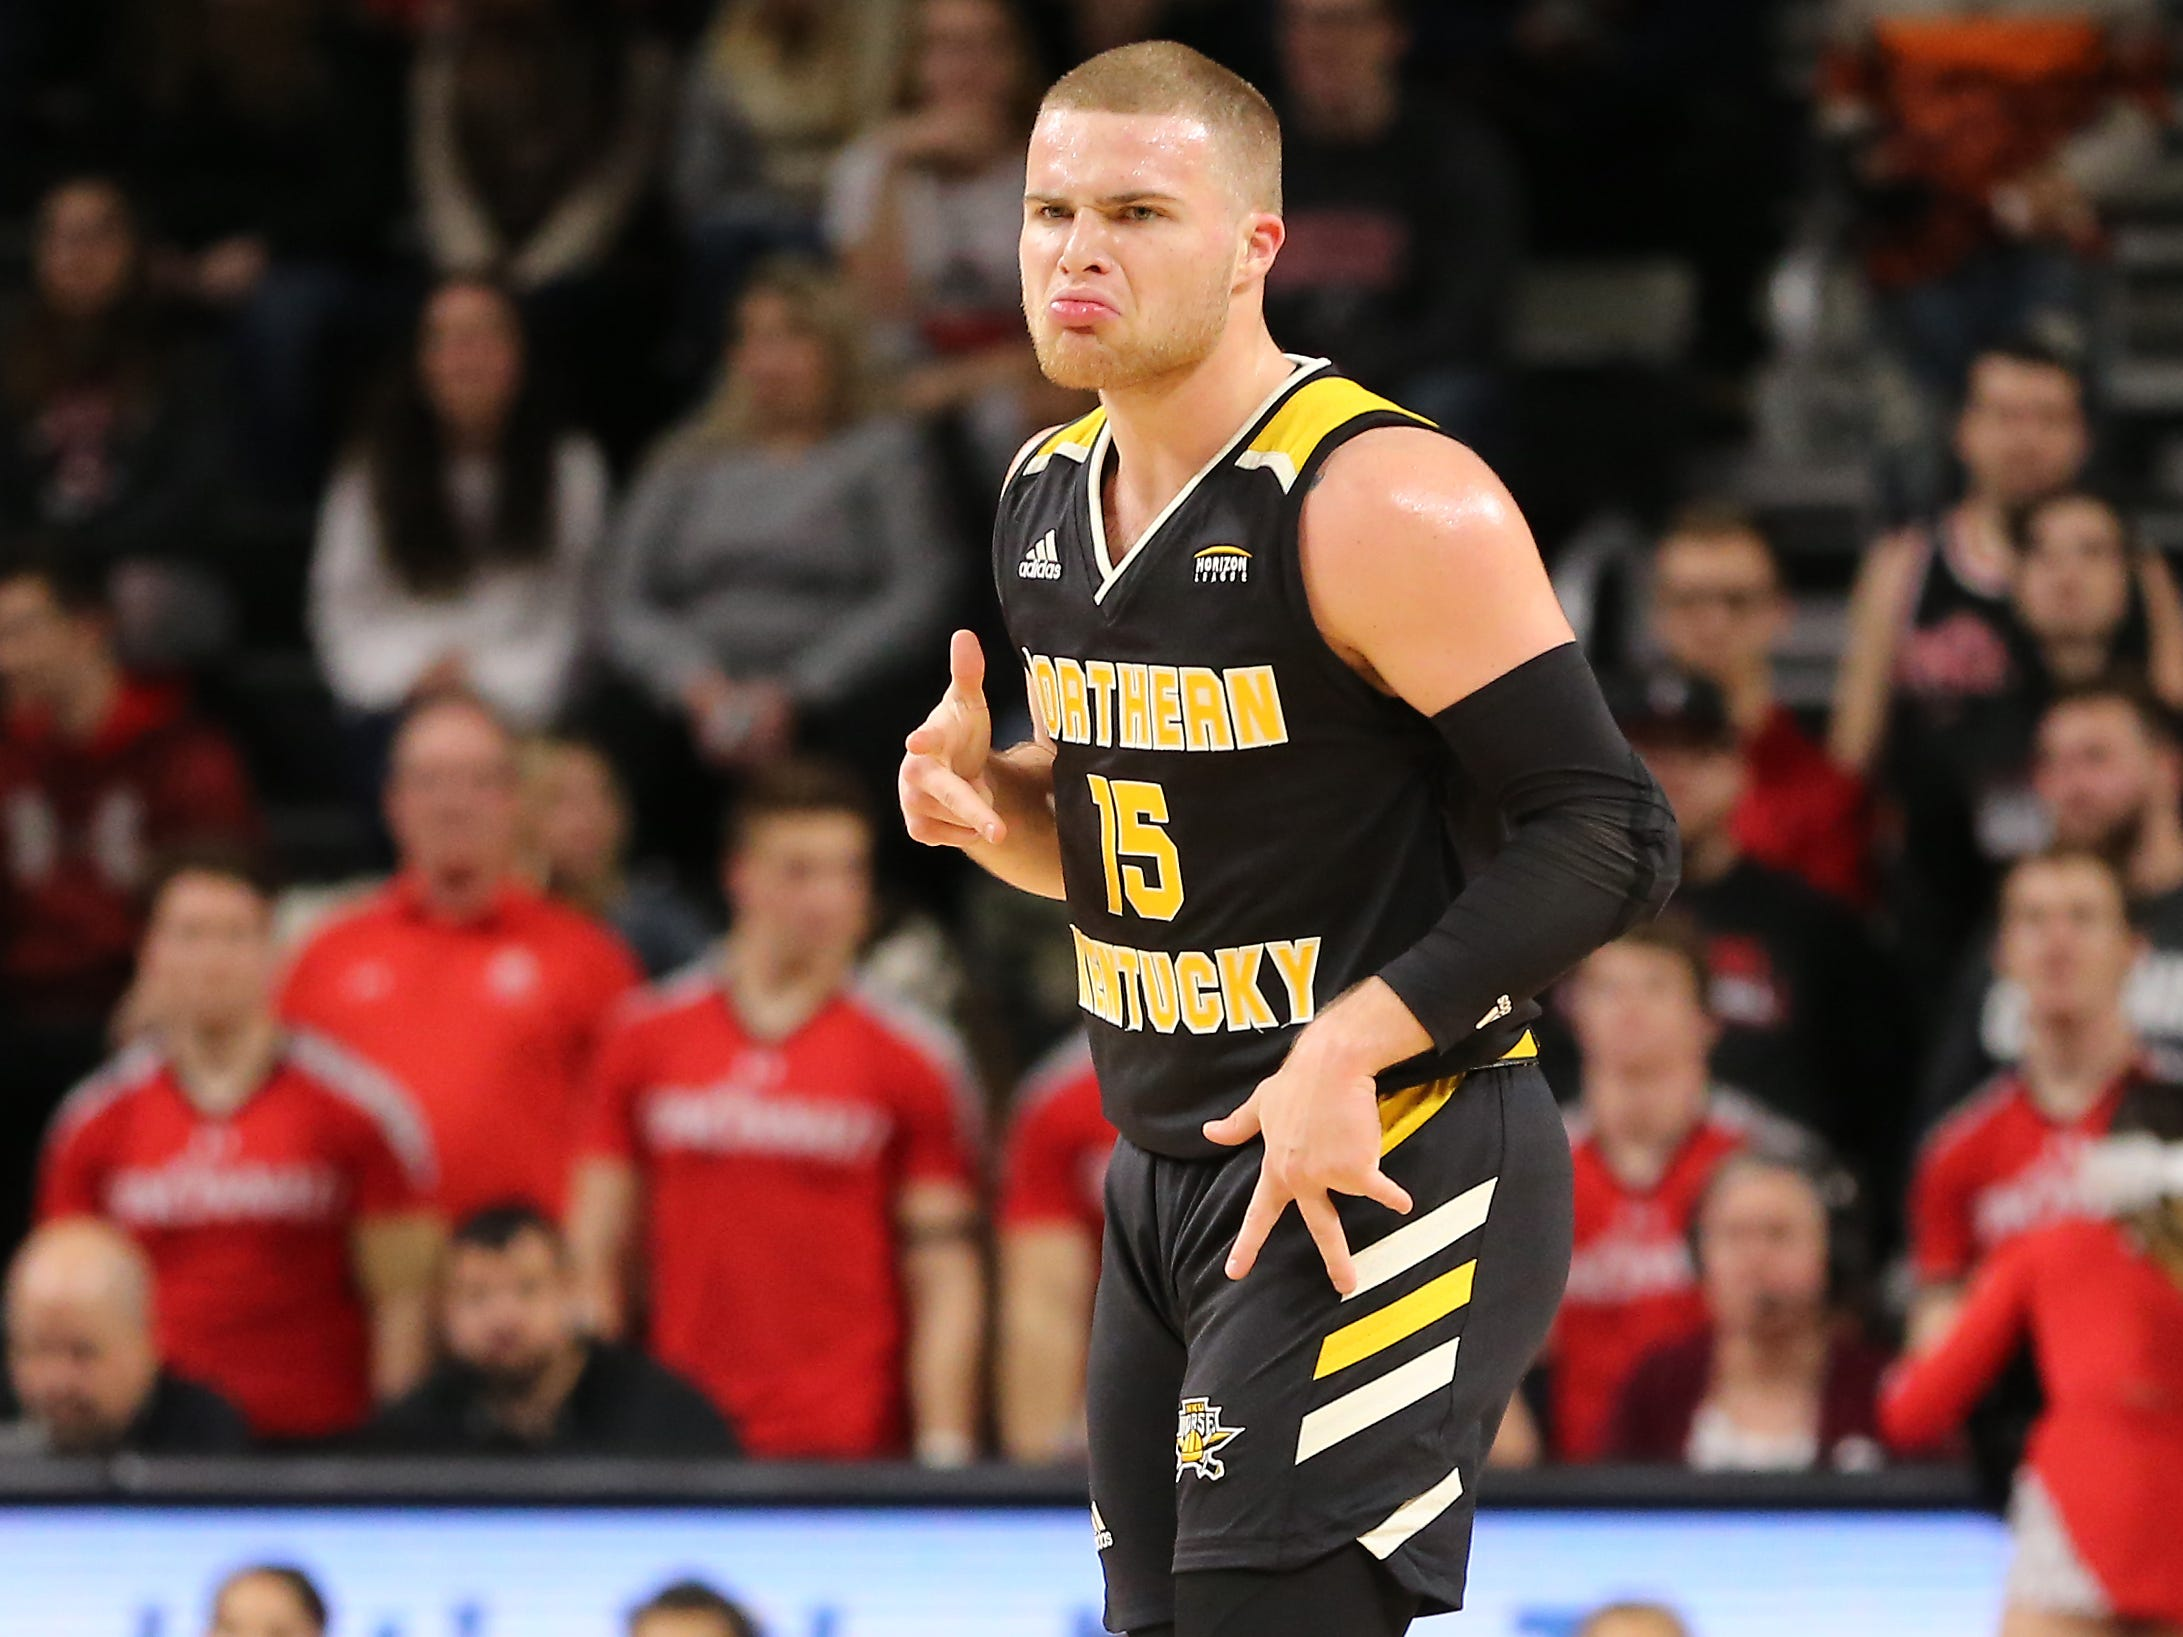 Northern Kentucky Norse guard Tyler Sharpe (15) reacts after making a 3-pointer in the first half of an NCAA college basketball against the Cincinnati Bearcats, Tuesday, Dec. 4, 2018, at Fifth Third Arena in Cincinnati.